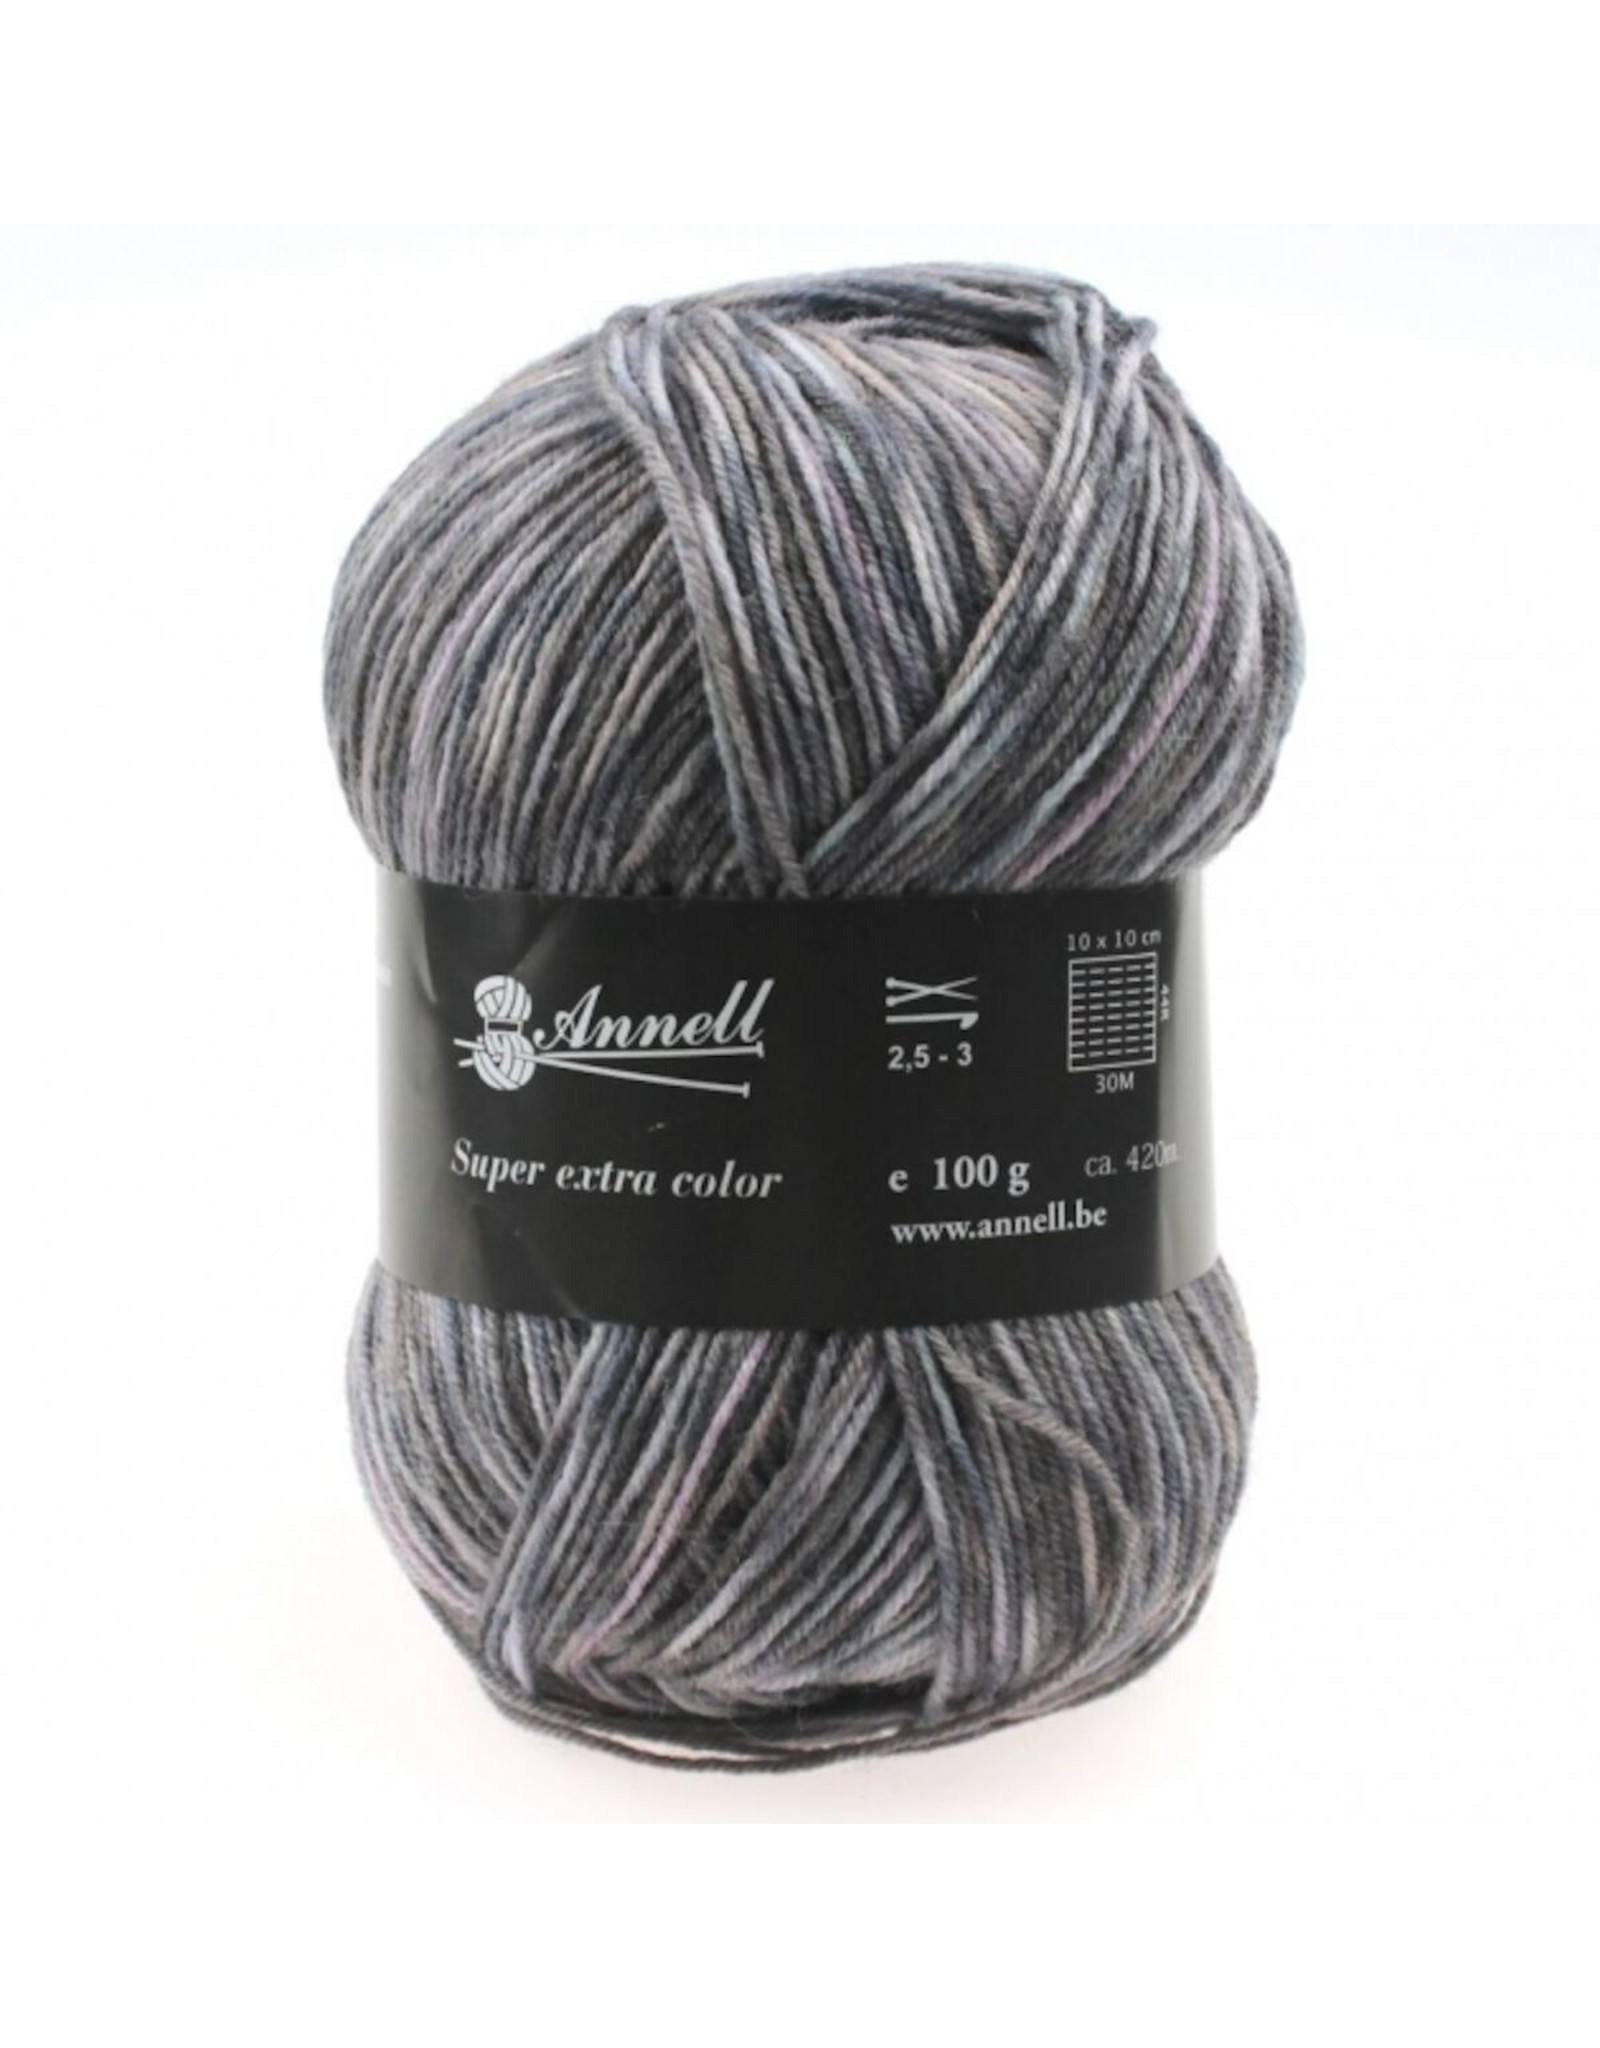 Annell Annell Super extra color